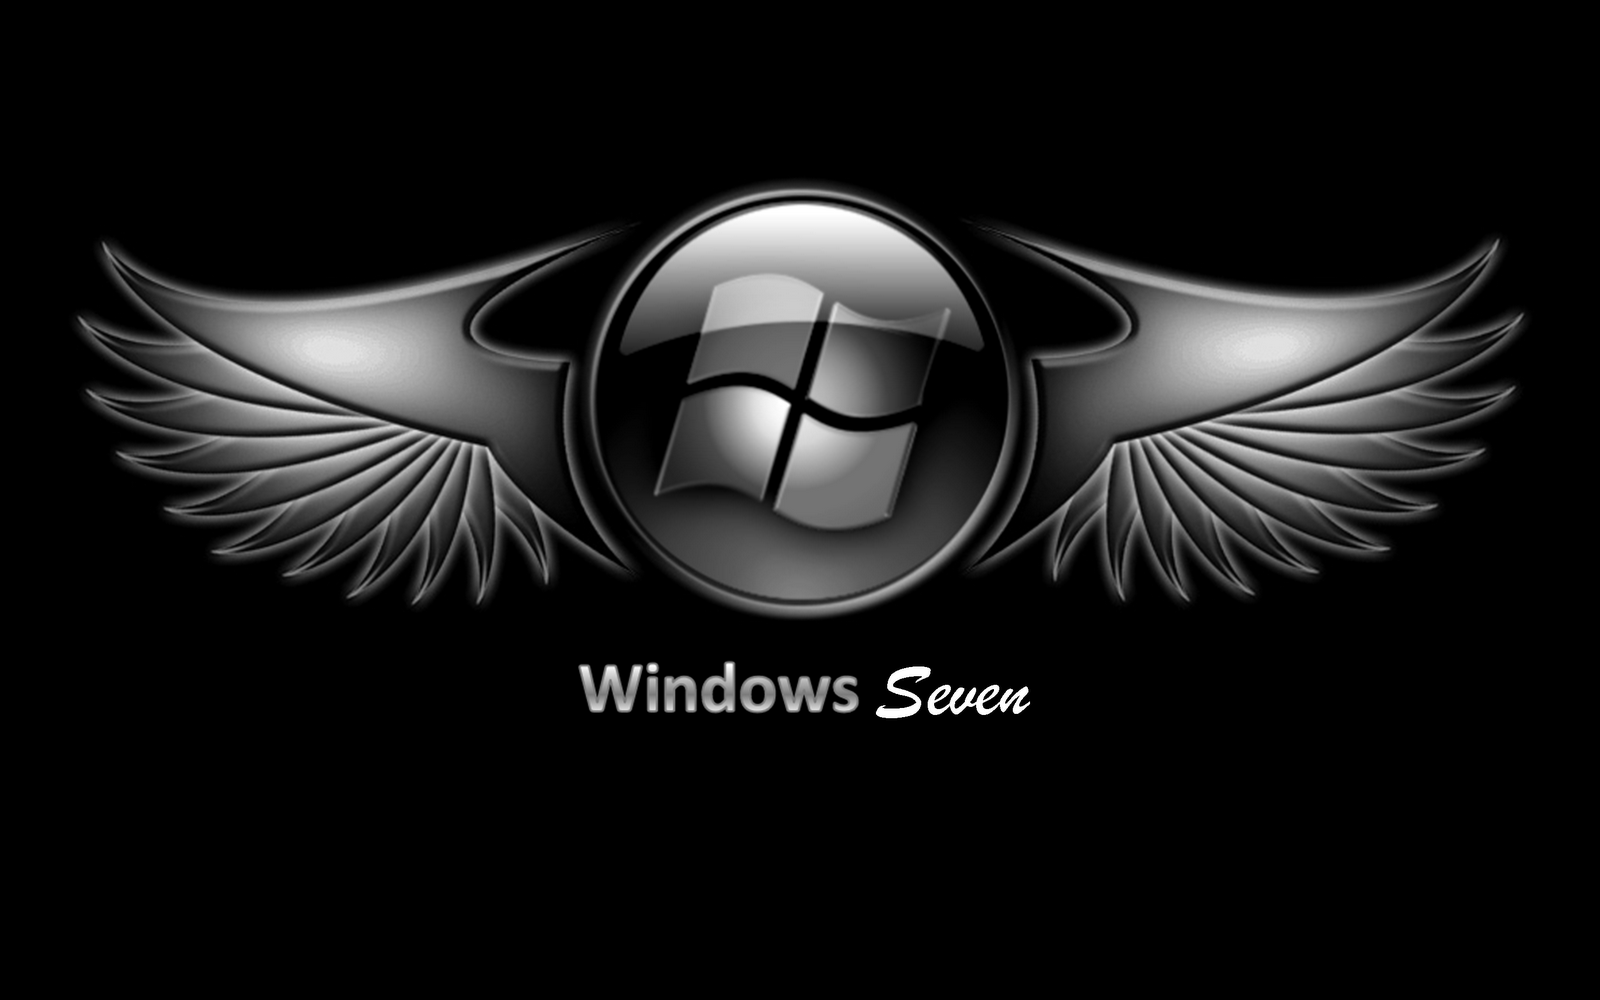 d wallpaper windows wallpapers for free download about